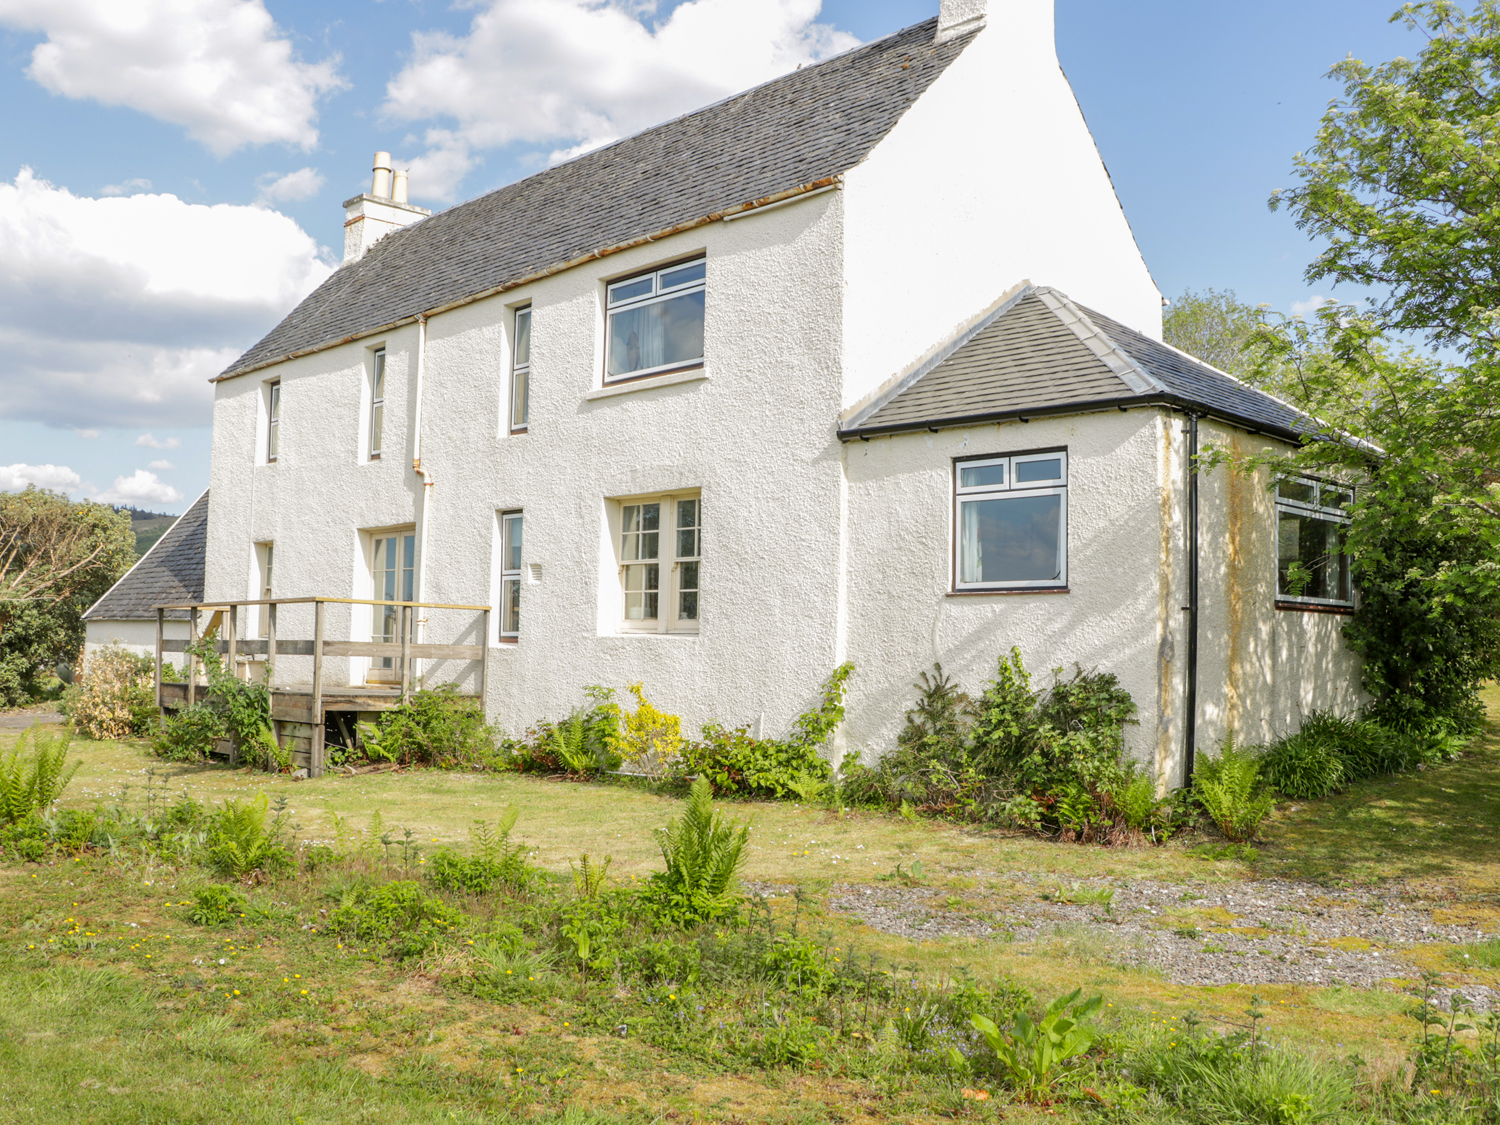 3 bedroom Cottage for rent in Port Appin